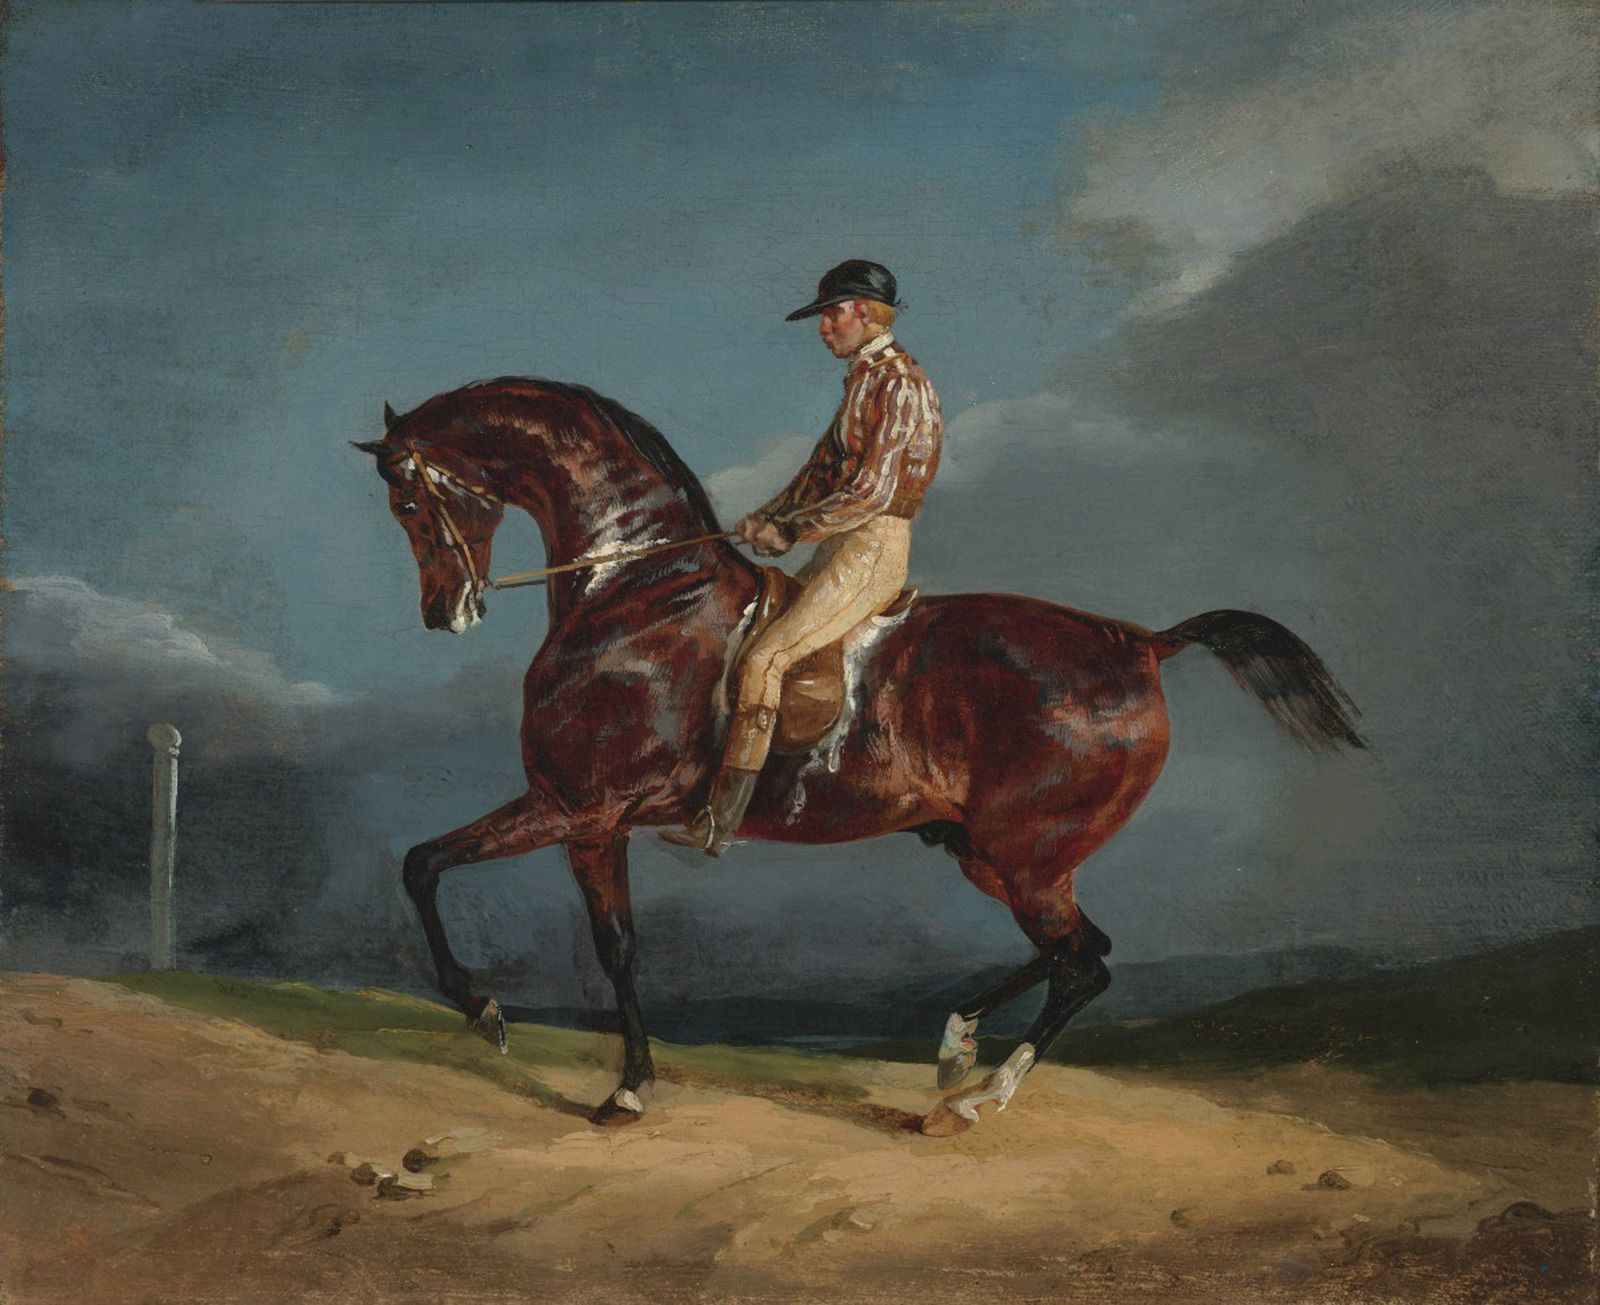 """Jockey montant un cheval de course, vers 1821-1822"" de Théodore GÉRICAULT - Courtesy The Paul Mellon Collection, Virginia Museum of Fine Arts © Photo Éric Simon"